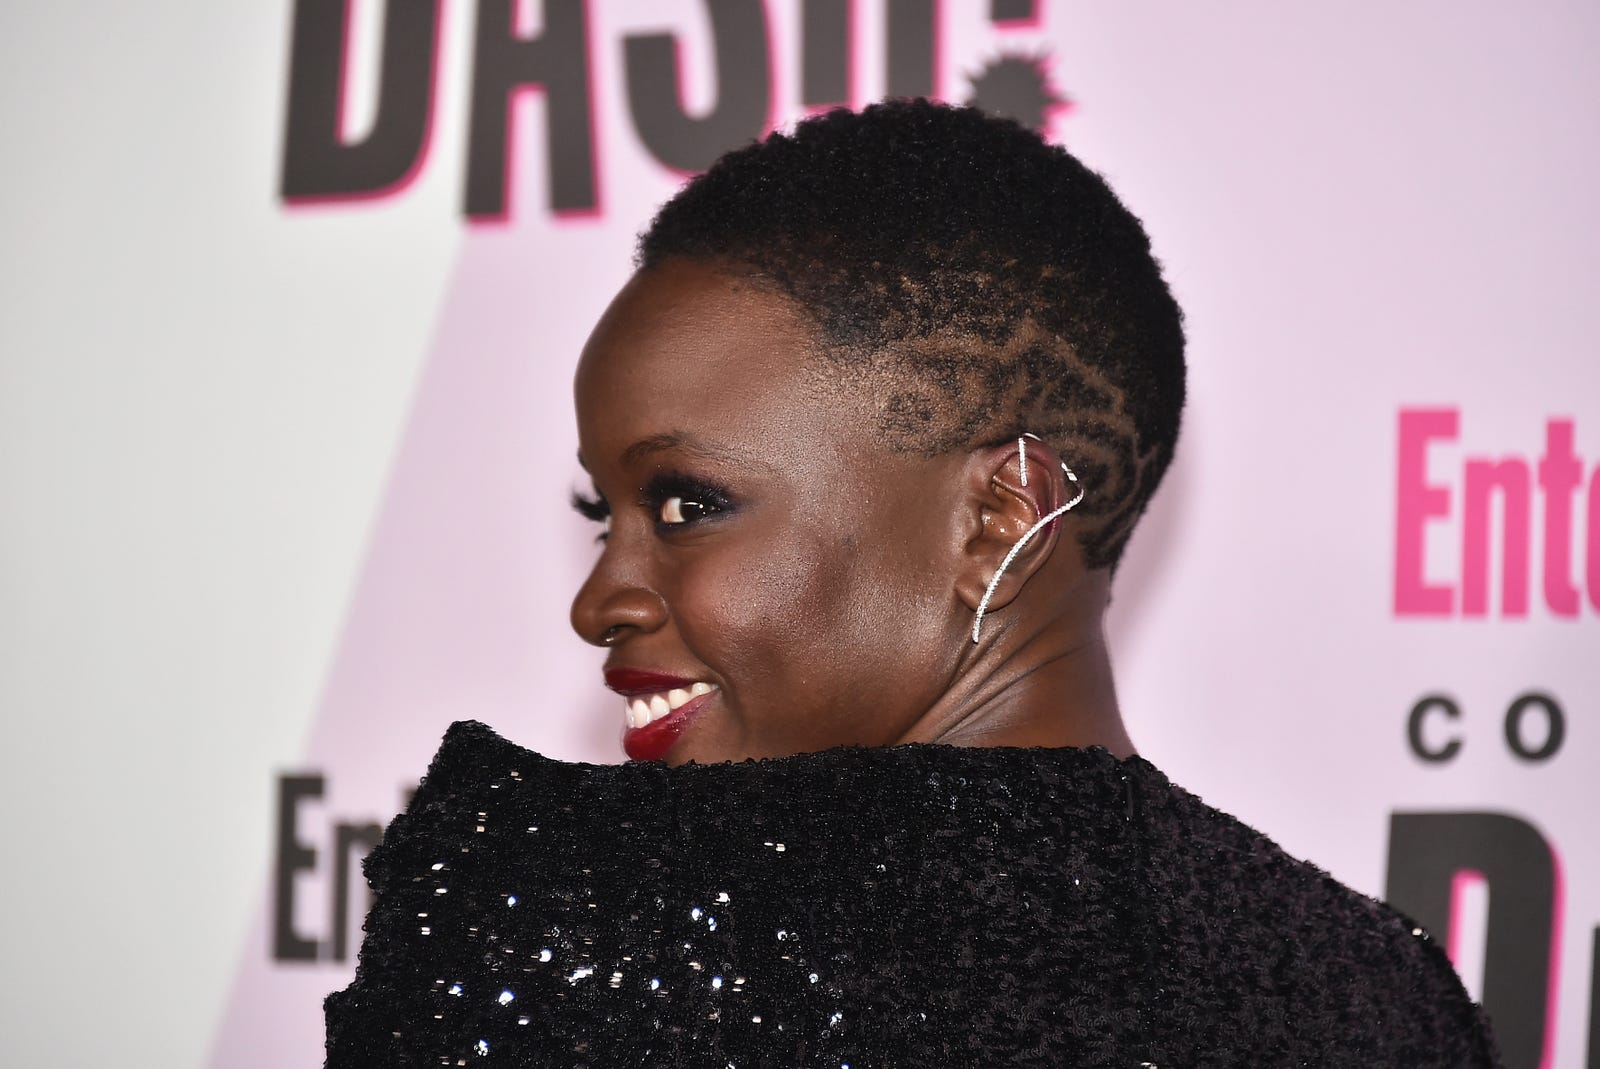 Danai Gurira attends Entertainment Weekly's Comic-Con Bash held at FLOAT, Hard Rock Hotel San Diego on July 21, 2018 in San Diego, California sponsored by HBO